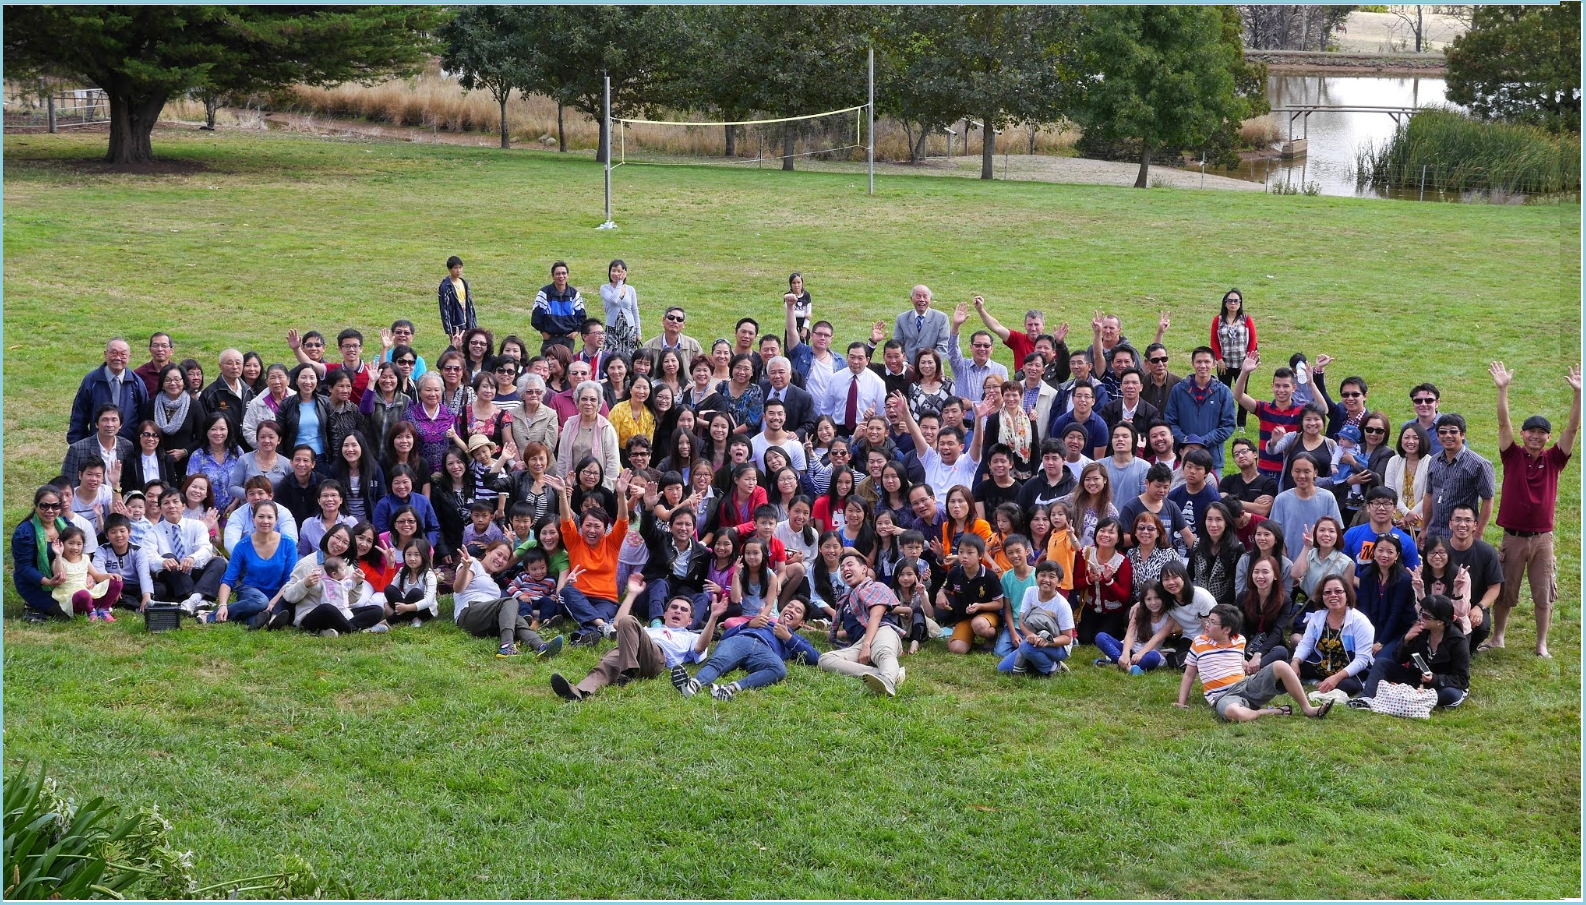 2015 Family Camp Rutherforth Park - Vietnamese Evangelical Church Melbourne